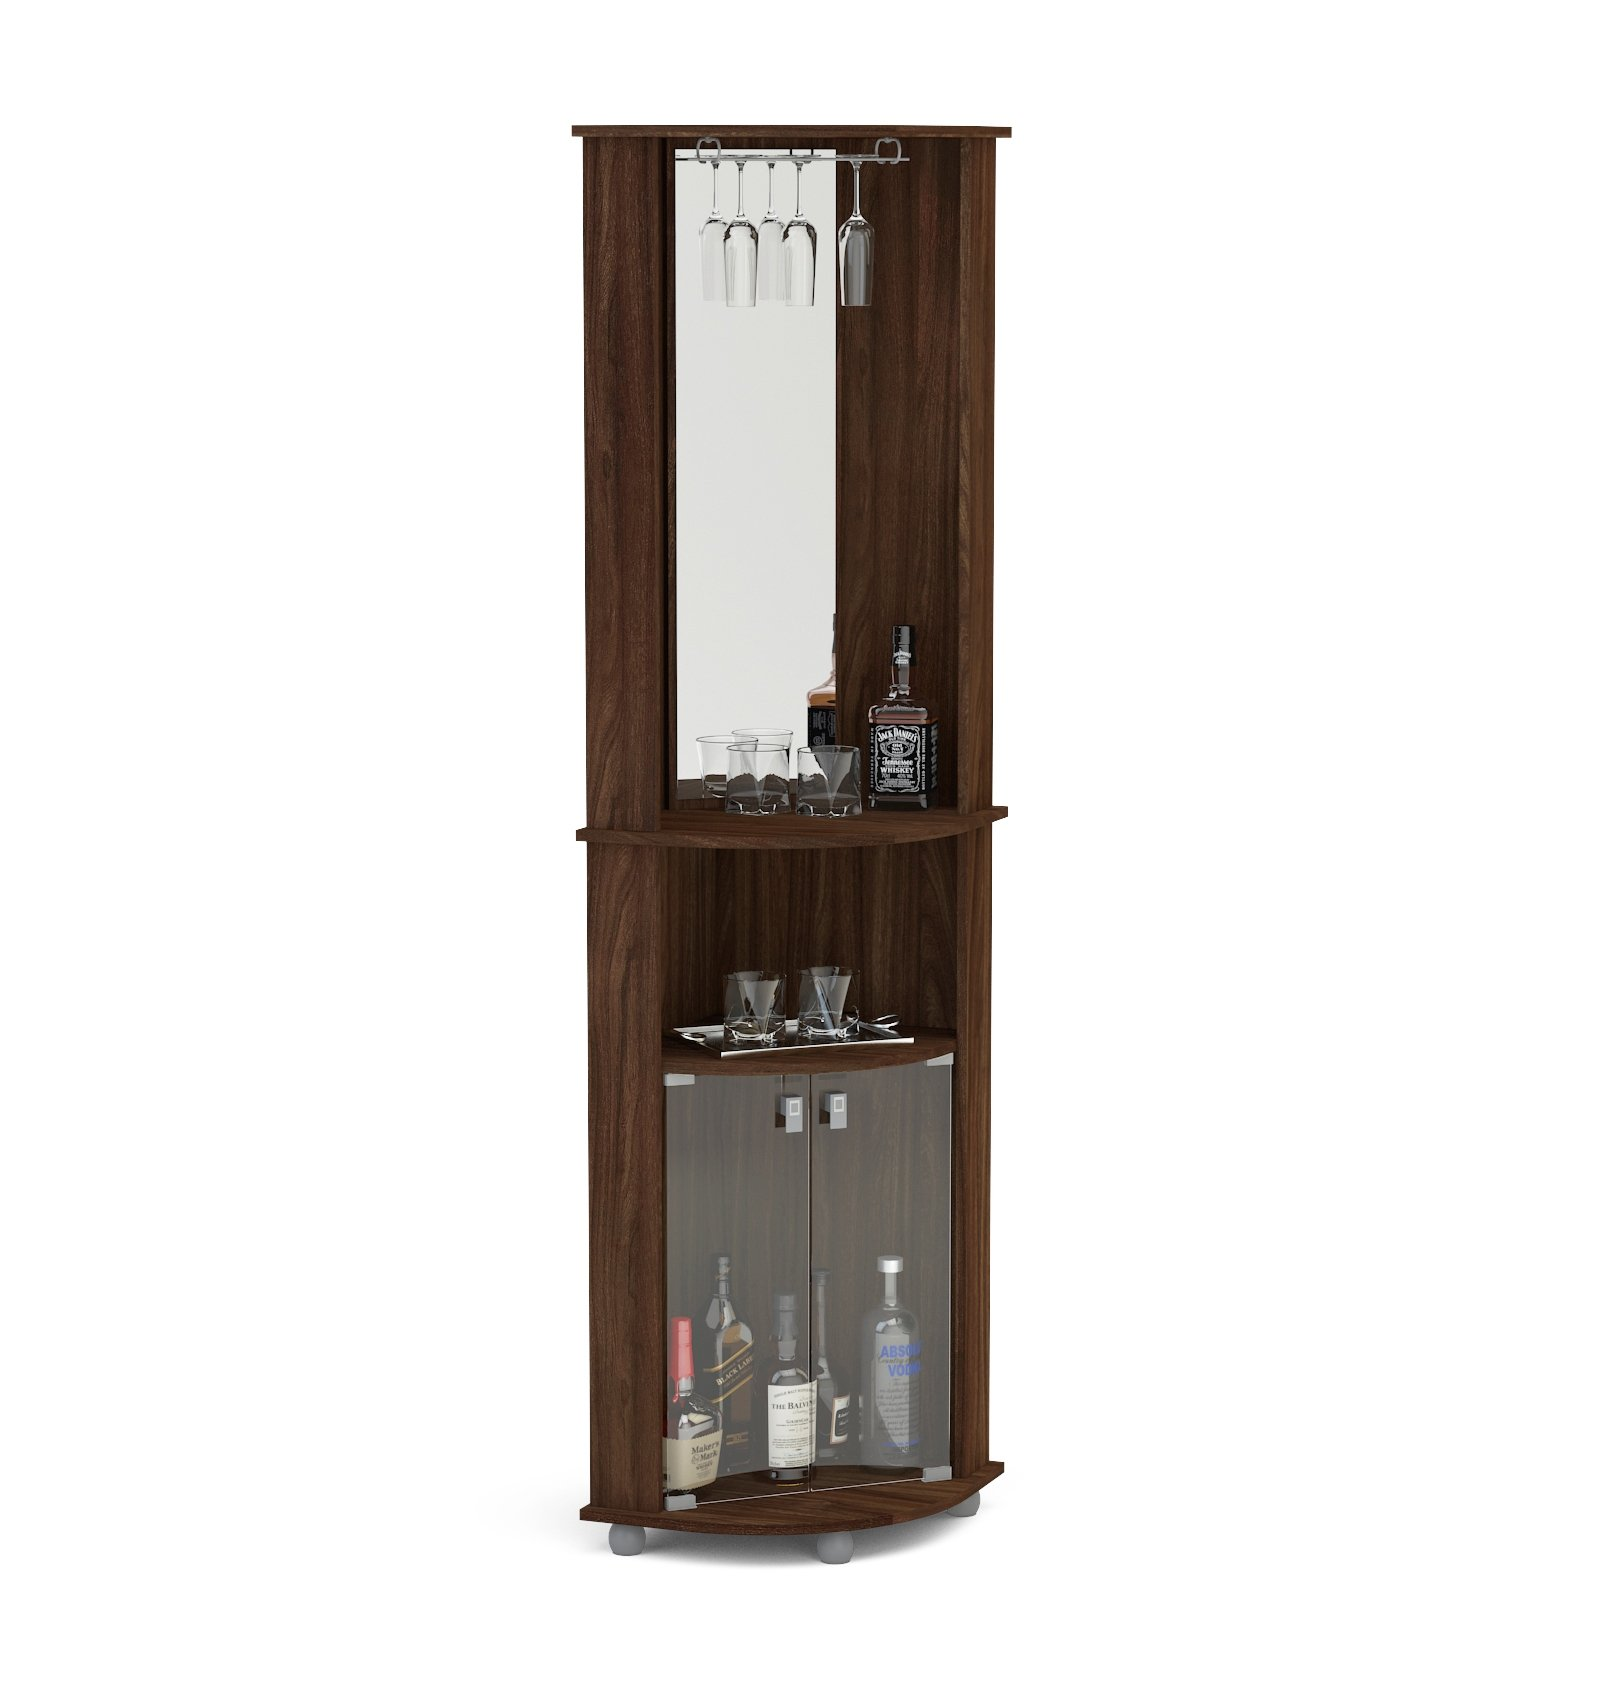 Boahaus Corner Bar, 2 Glass Door, Mirrowed Wall, Glass Rack Dark Brown/Wood